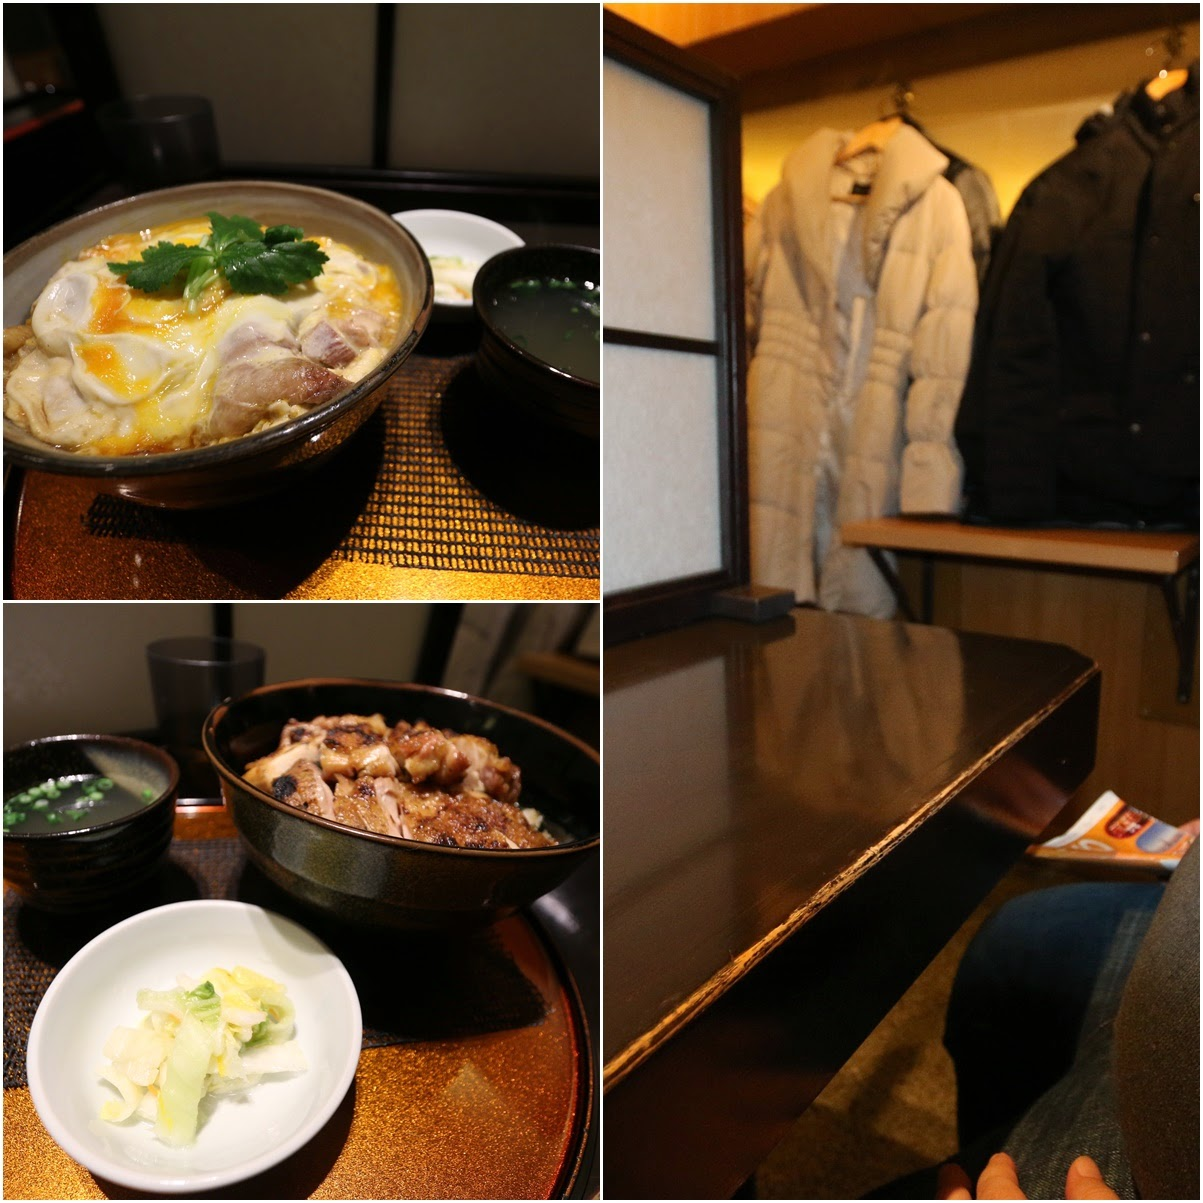 Restaurants ensure customers enjoy their privacy and comfort during their meals by placing a divider on the table while sharing the table besides hanging your coat in front of your table in Tokyo, Japan